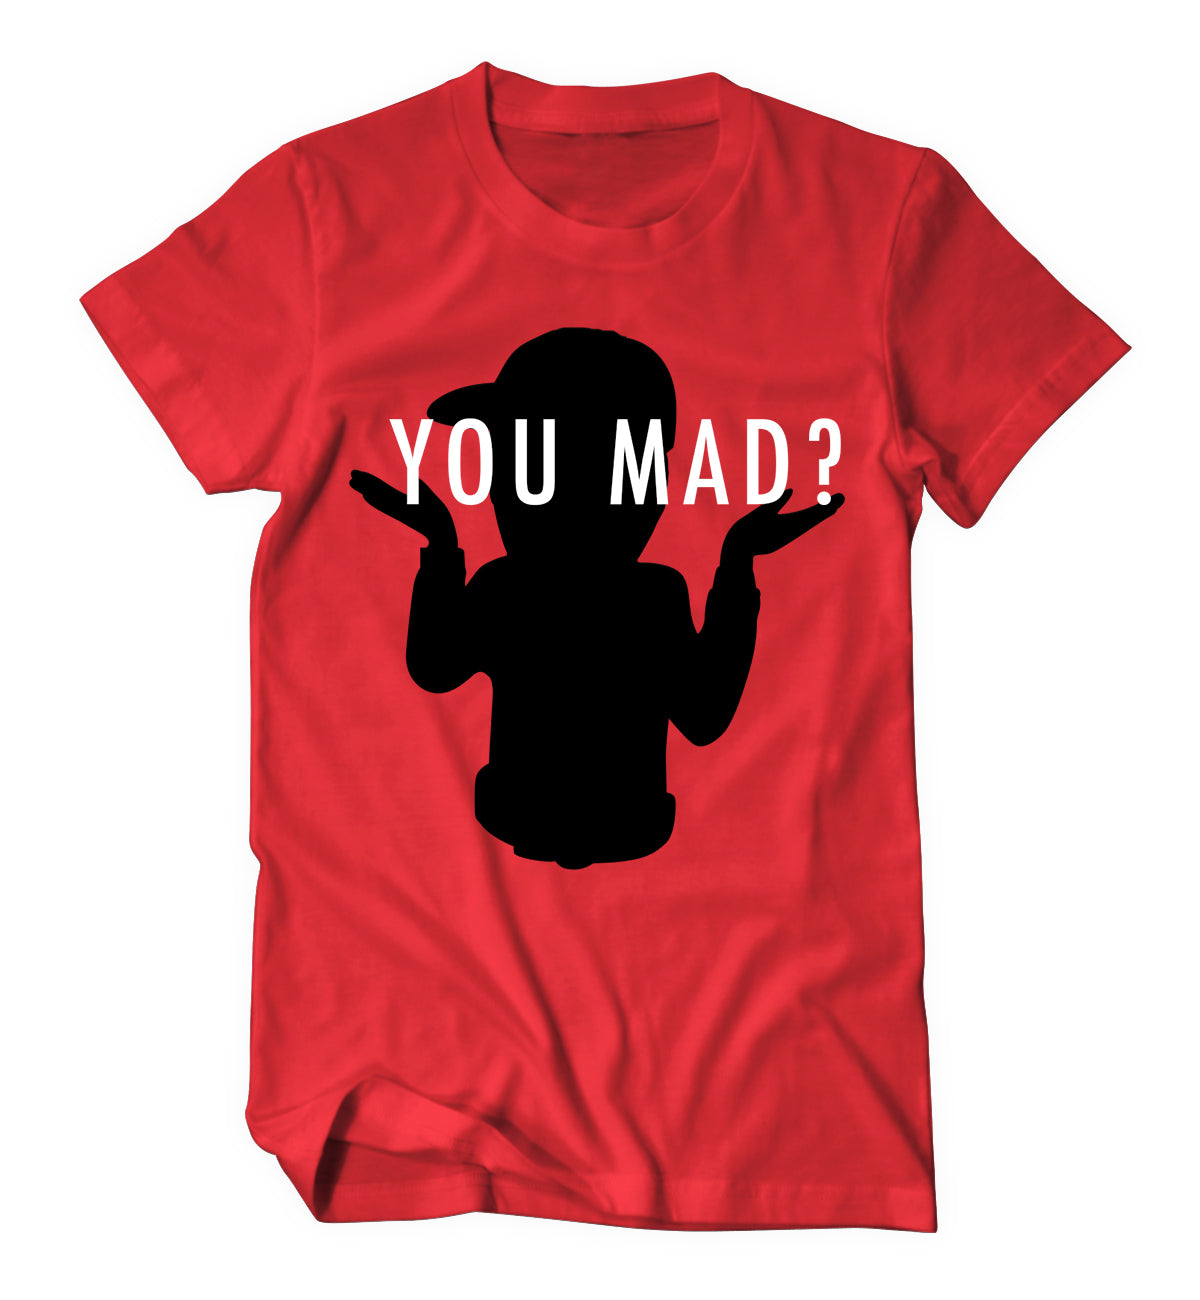 You Mad? (Red Shirt) + Digital DL